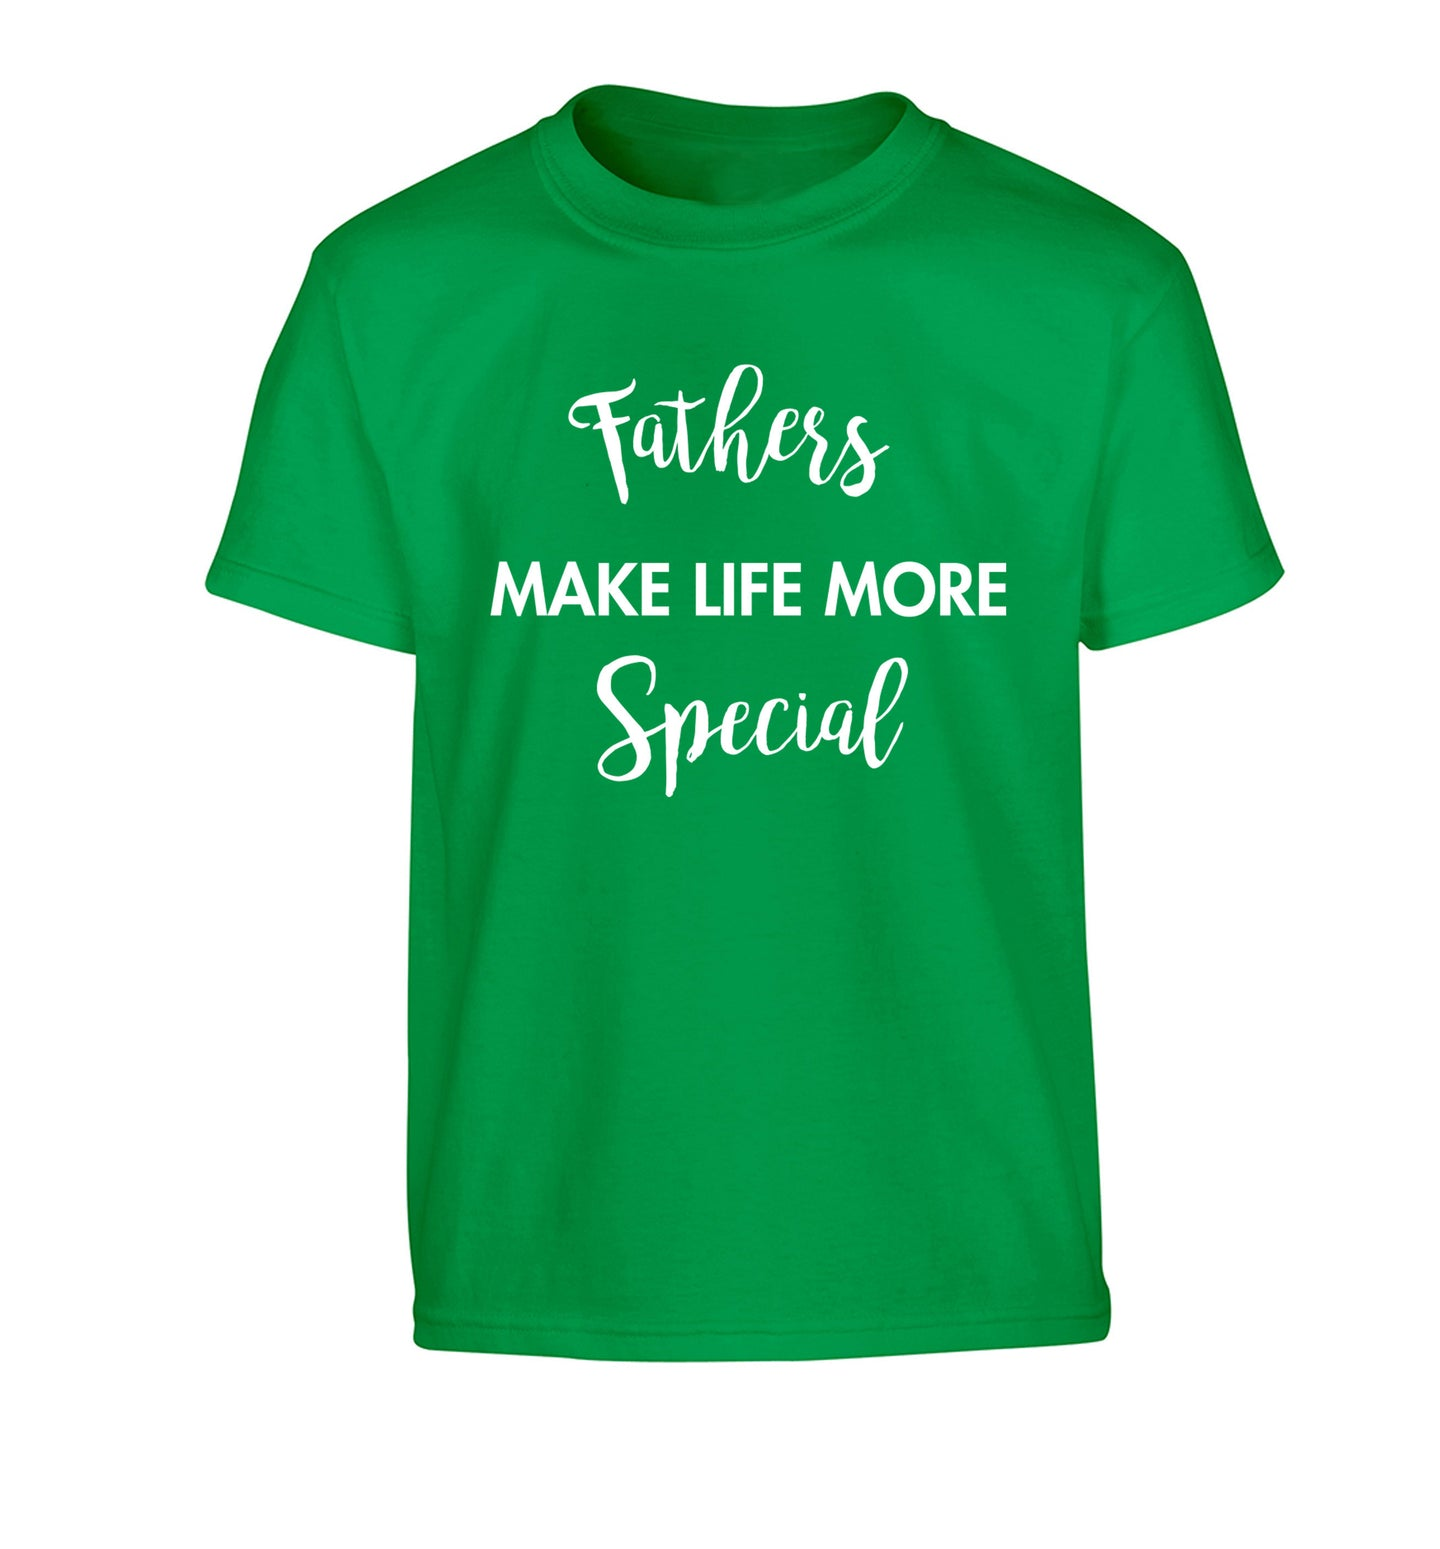 Fathers make life more special Children's green Tshirt 12-14 Years